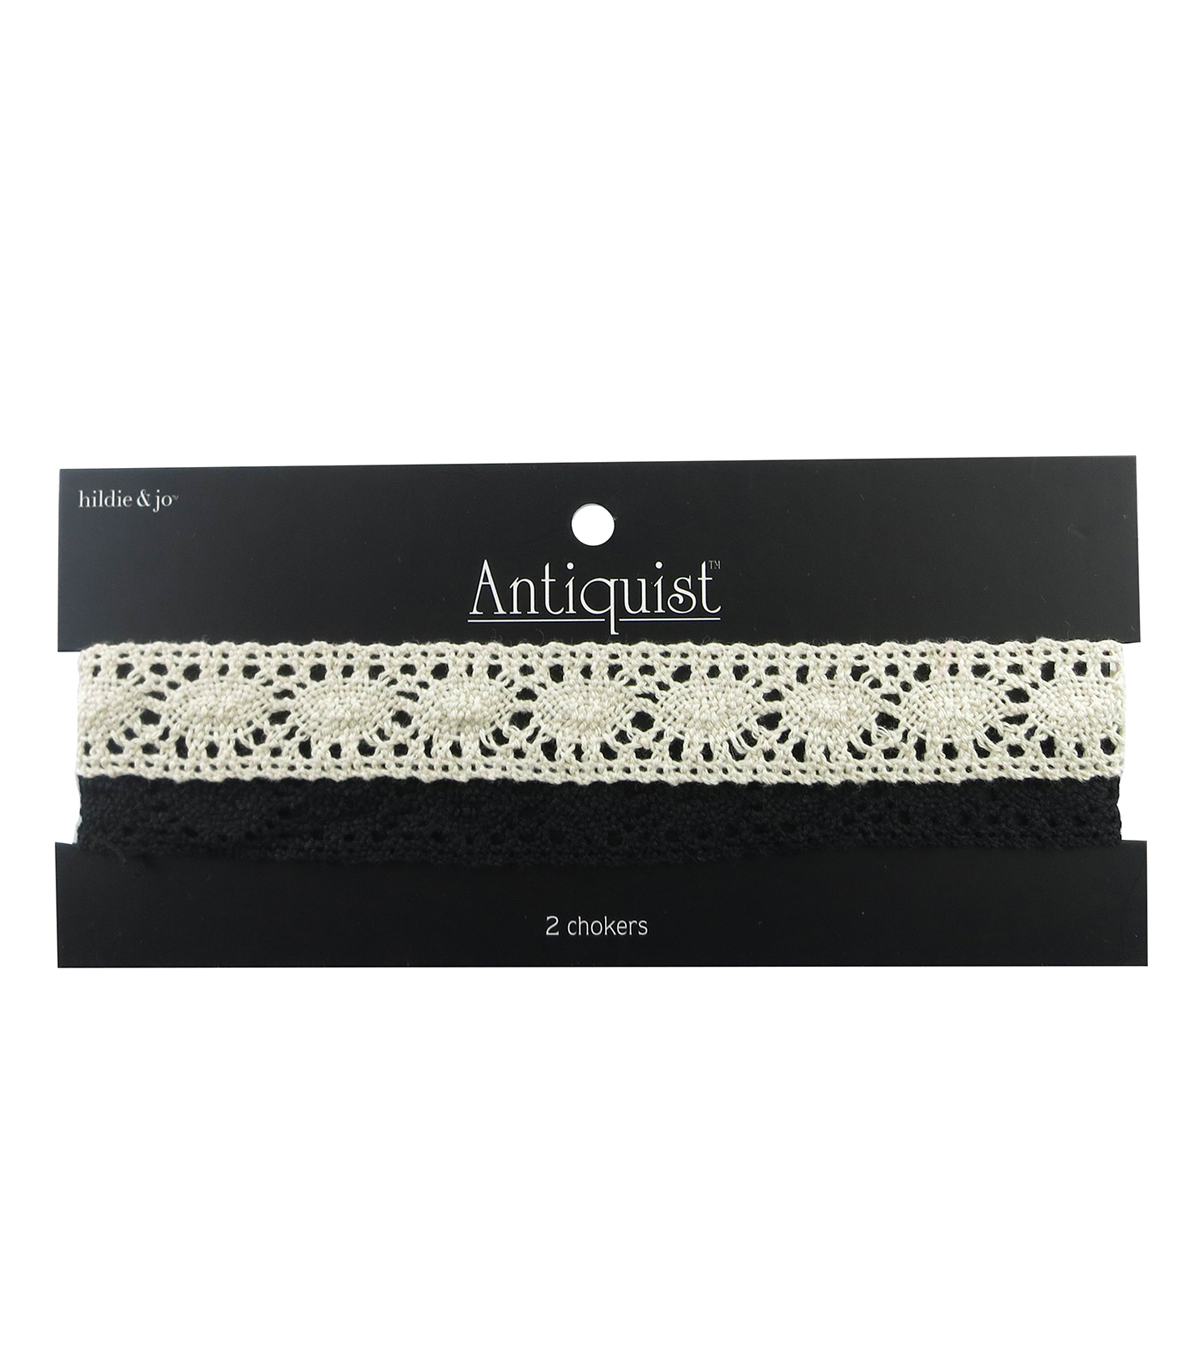 hildie & jo™  Antiquist 2 Pack 15\u0027\u0027 Crochet Chokers-Black & Cream